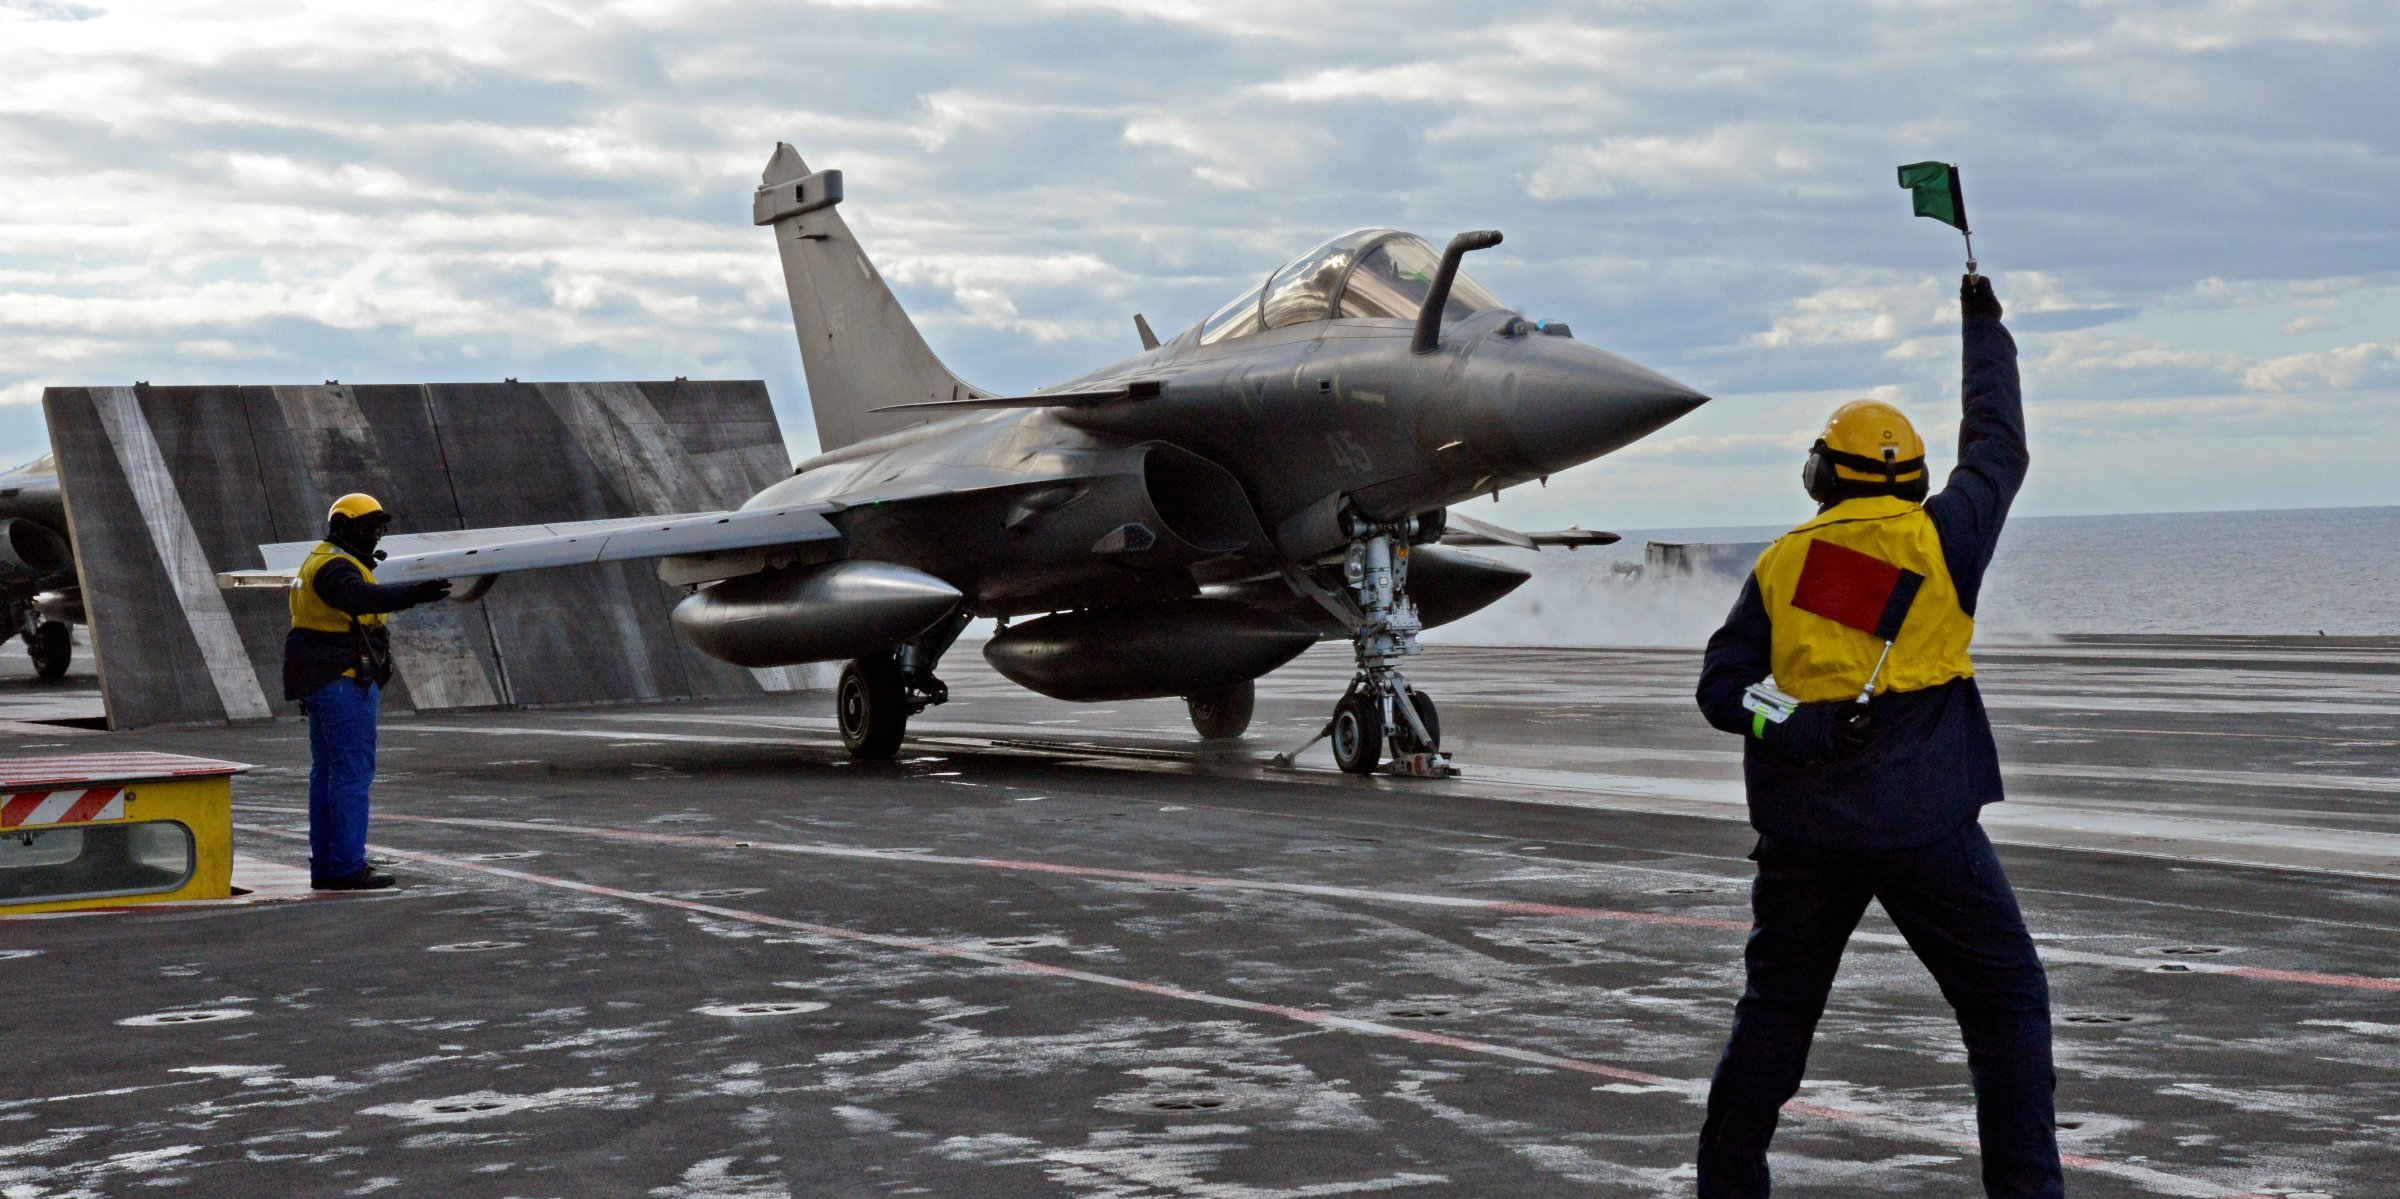 Will Macron send frigates and jets to the East Mediterranean again?